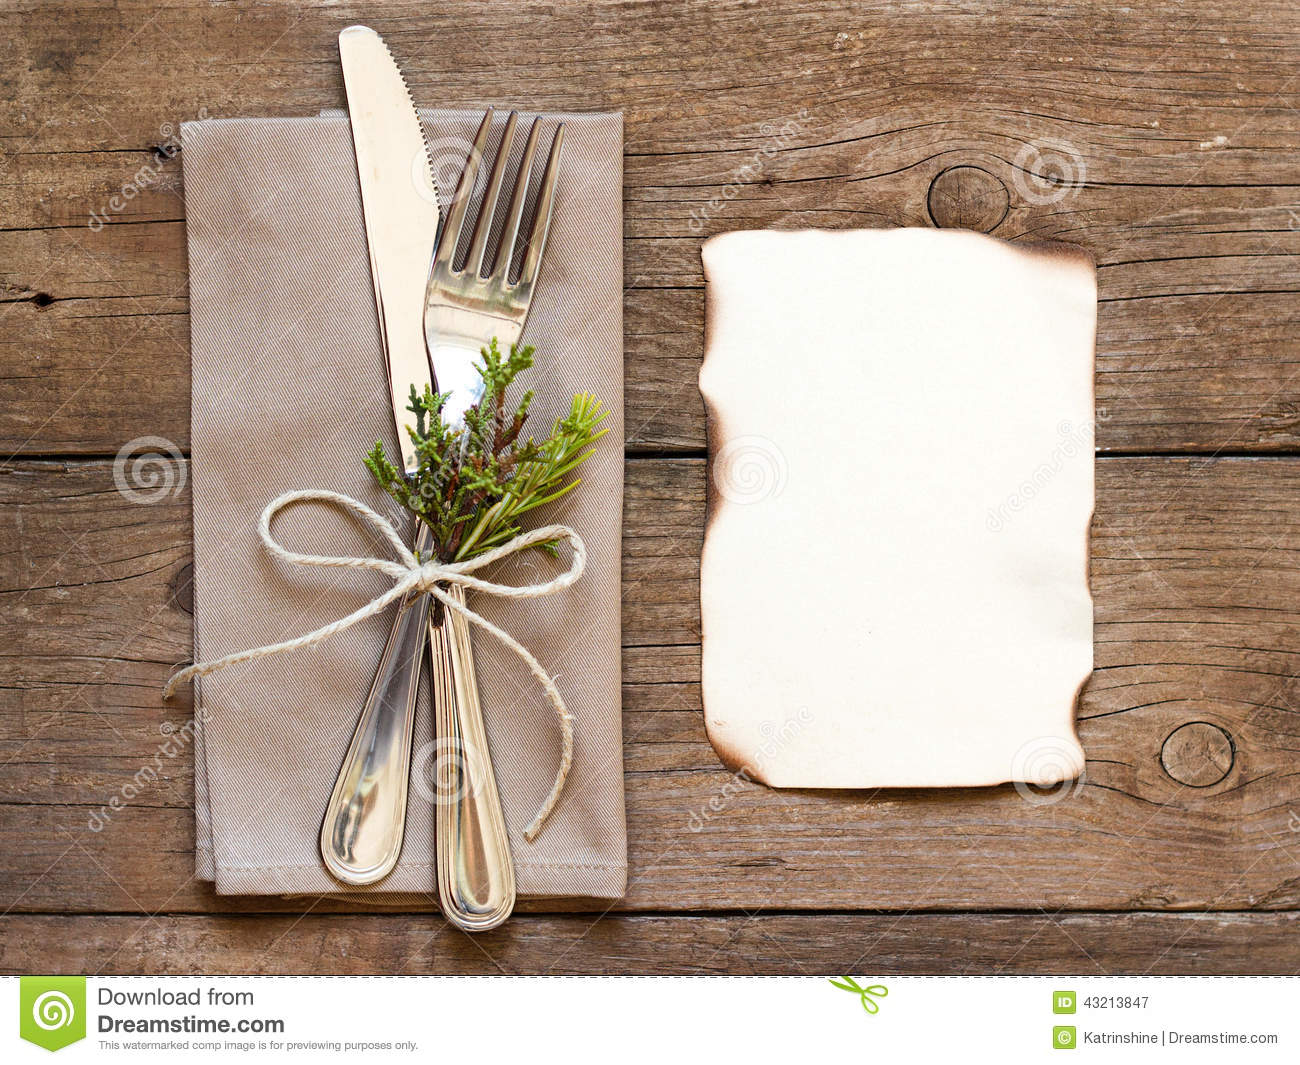 Rustic Table Setting And Old Burned Paper Stock Photo  : rustic table setting old burned paper wooden 43213847 from www.dreamstime.com size 1300 x 1065 jpeg 269kB